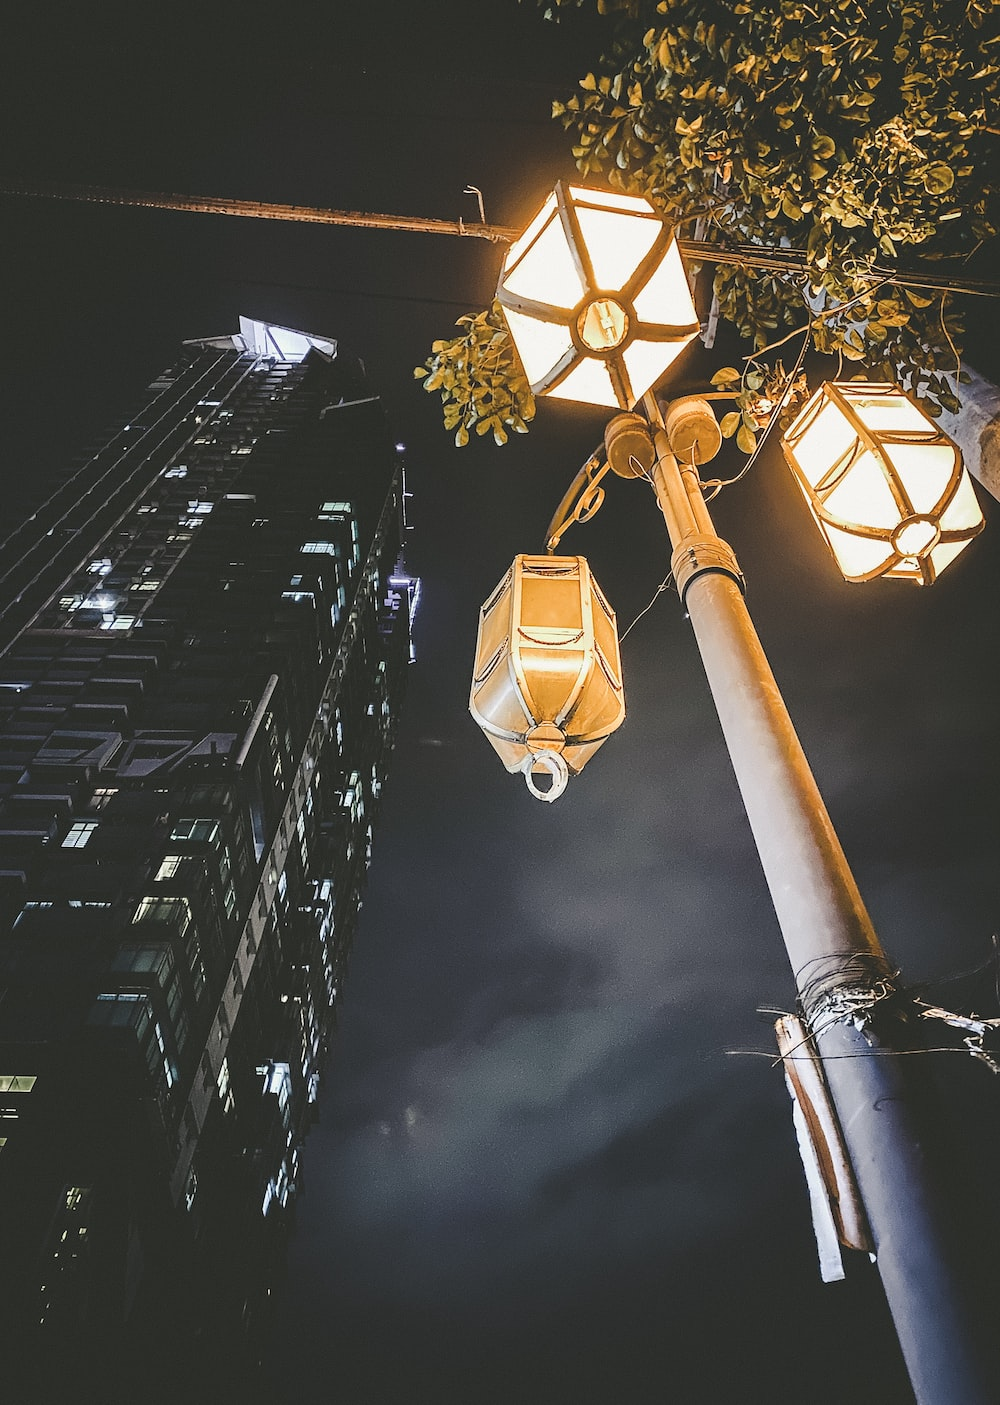 turned-on lamp posts at night